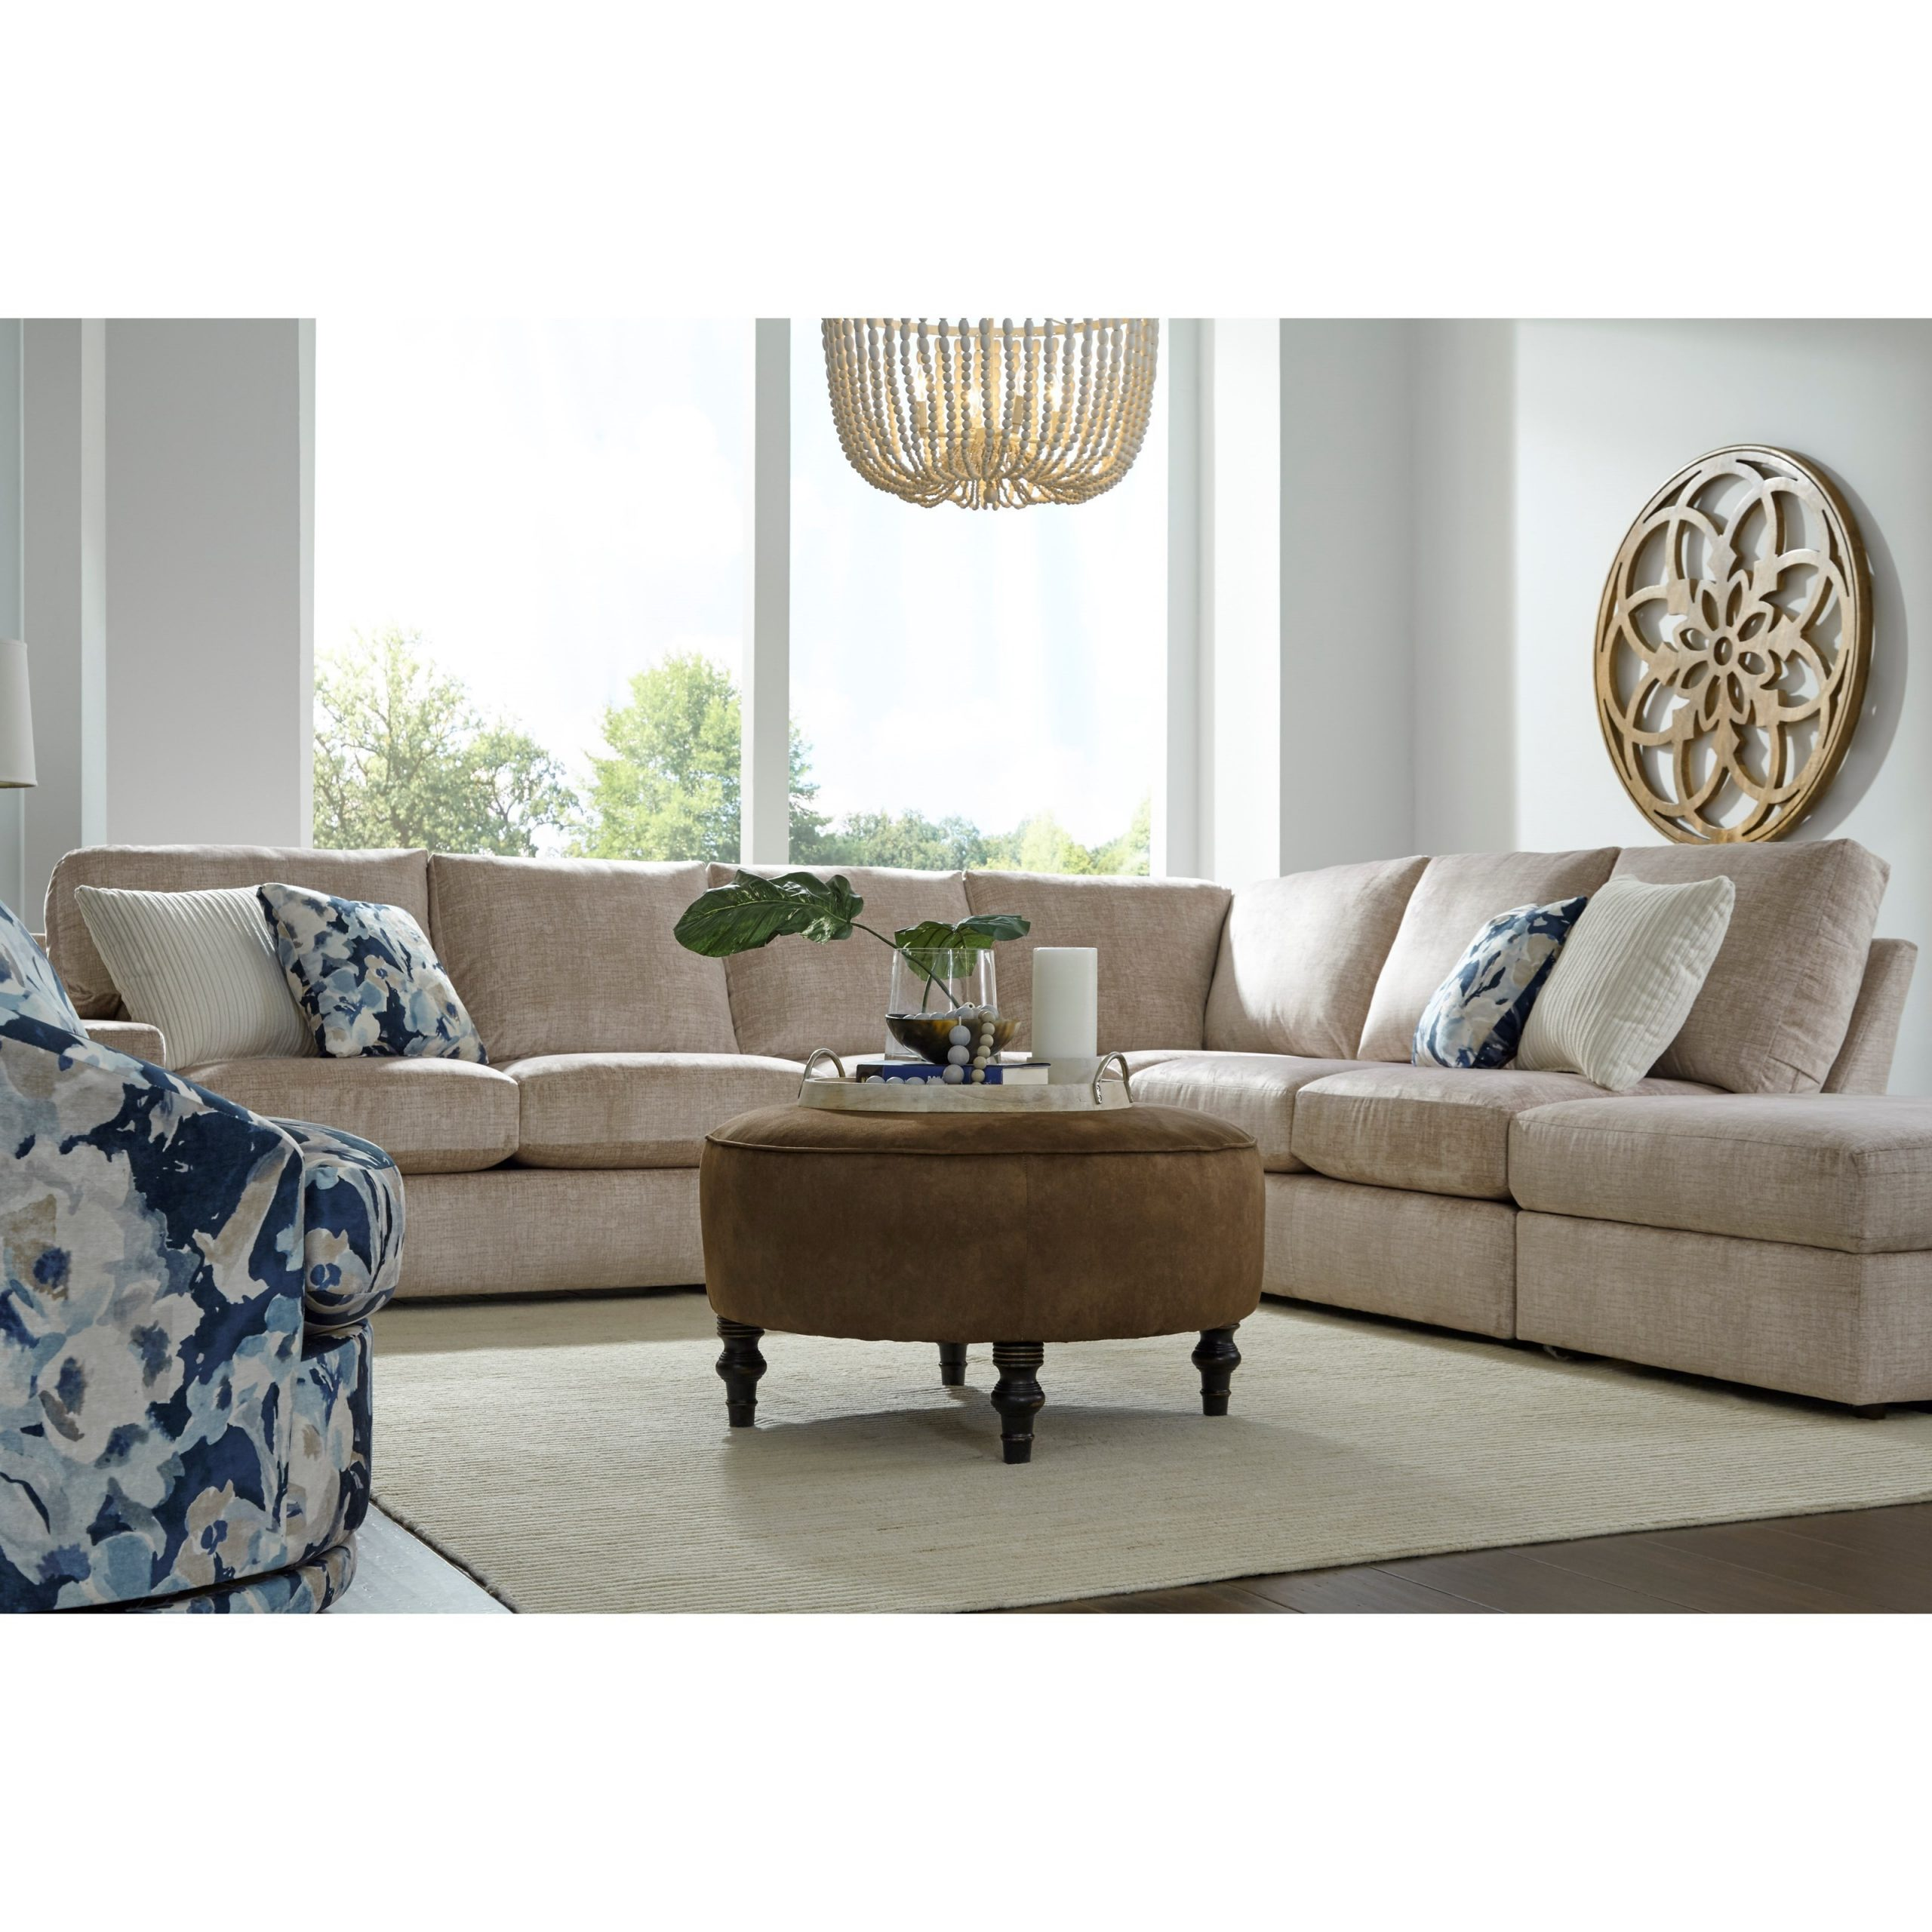 Best Home Furnishings Dovely Casual Five Seat Sectional For Palisades Reversible Small Space Sectional Sofas With Storage (View 4 of 15)